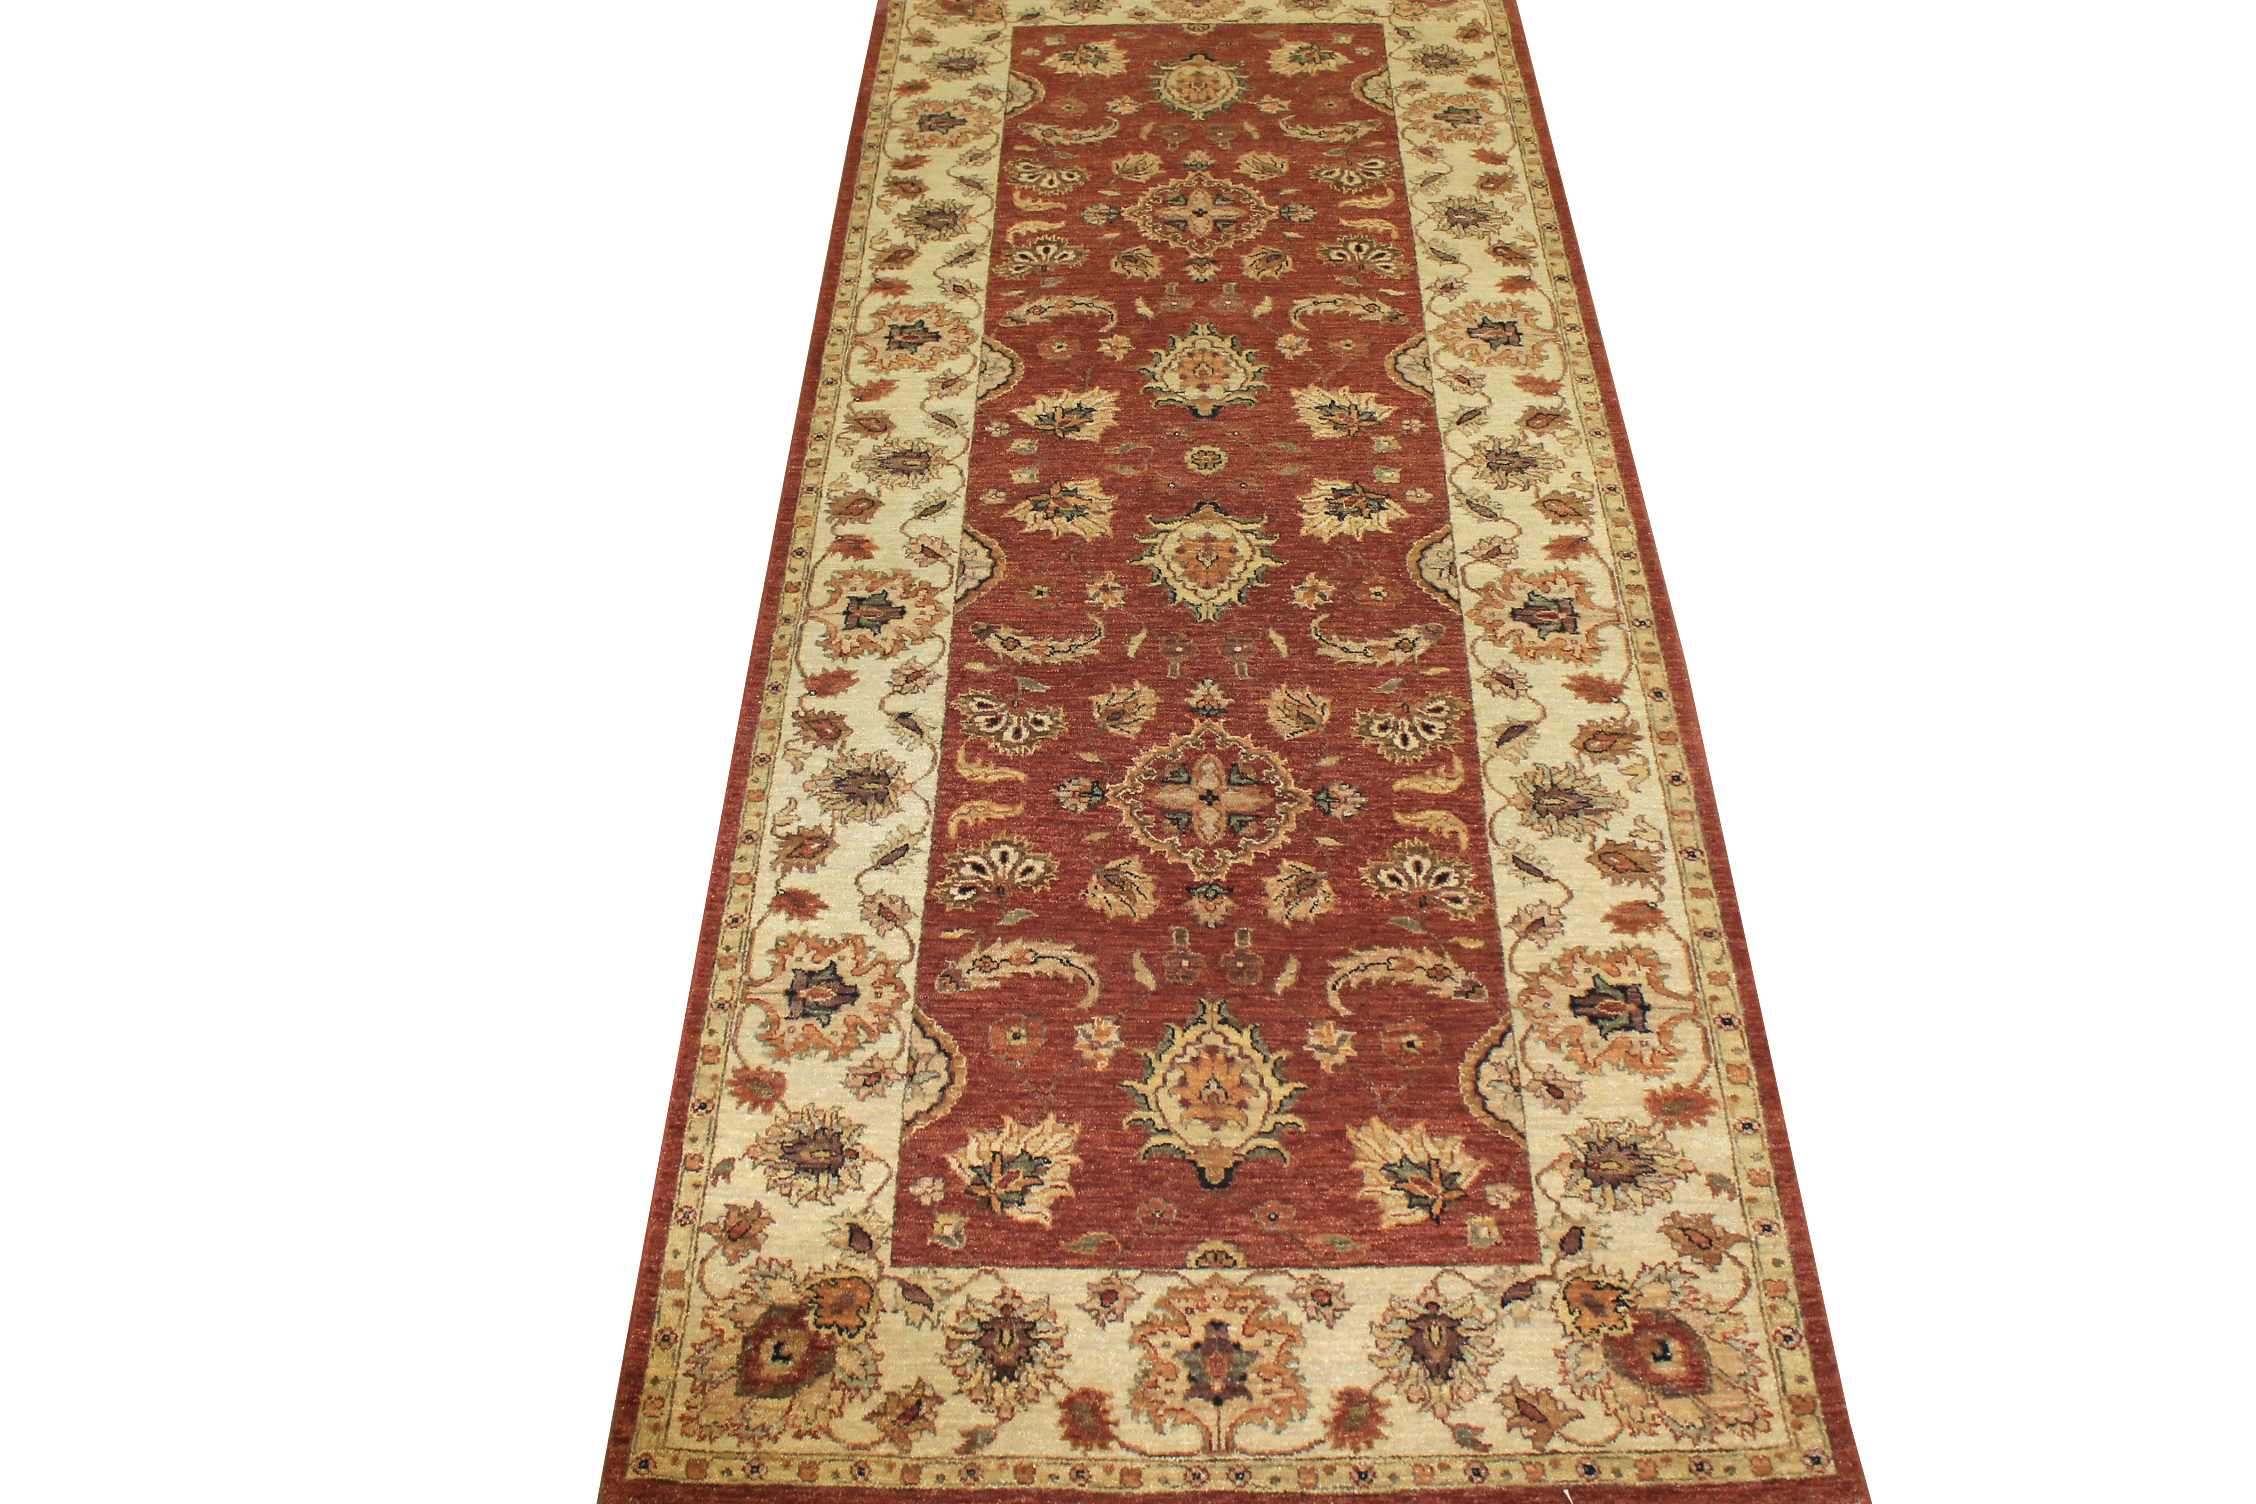 Wide Runner Traditional Hand Knotted Wool Area Rug - MR10191